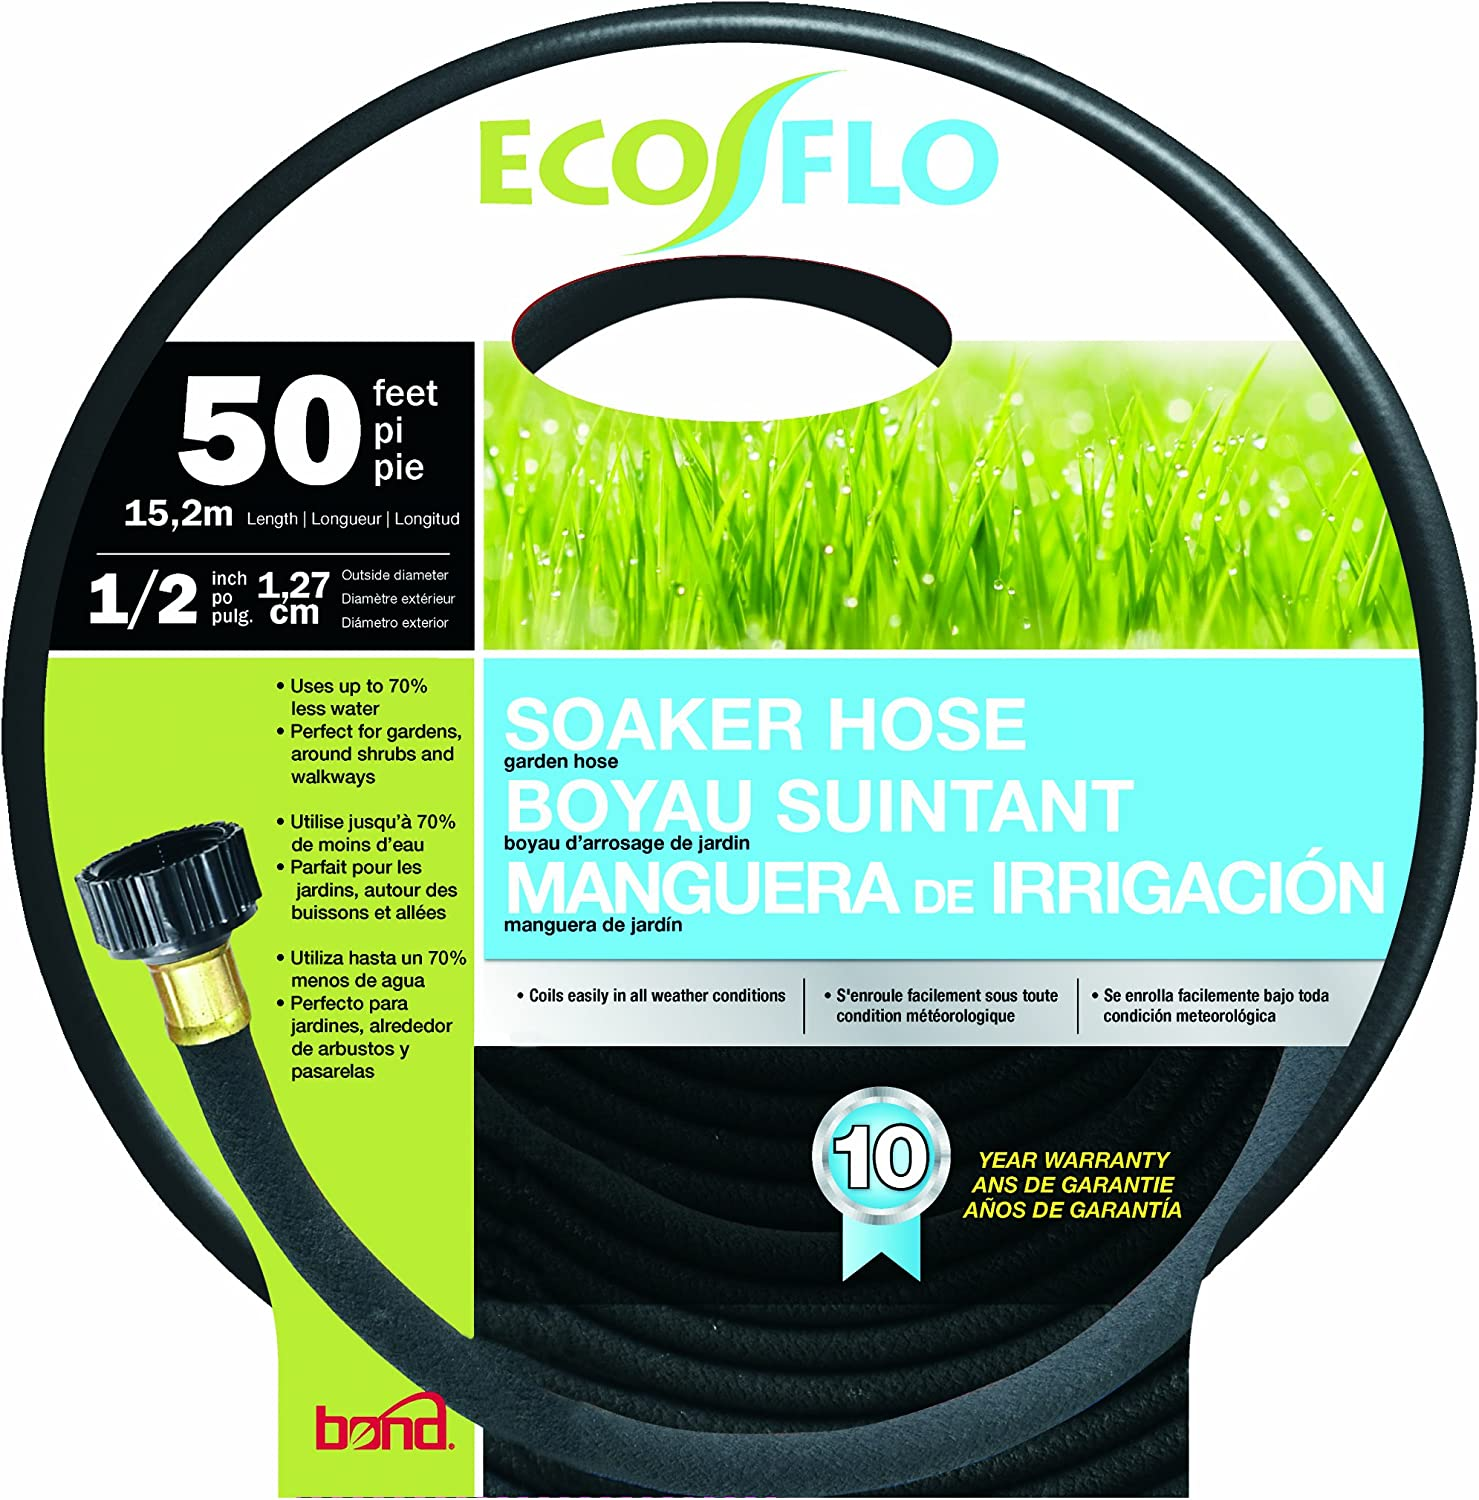 Bond Manufacturing Bond 70280 Eco Flo 50-Feet by 1/2-Inch Soaker Garden Hose, FT